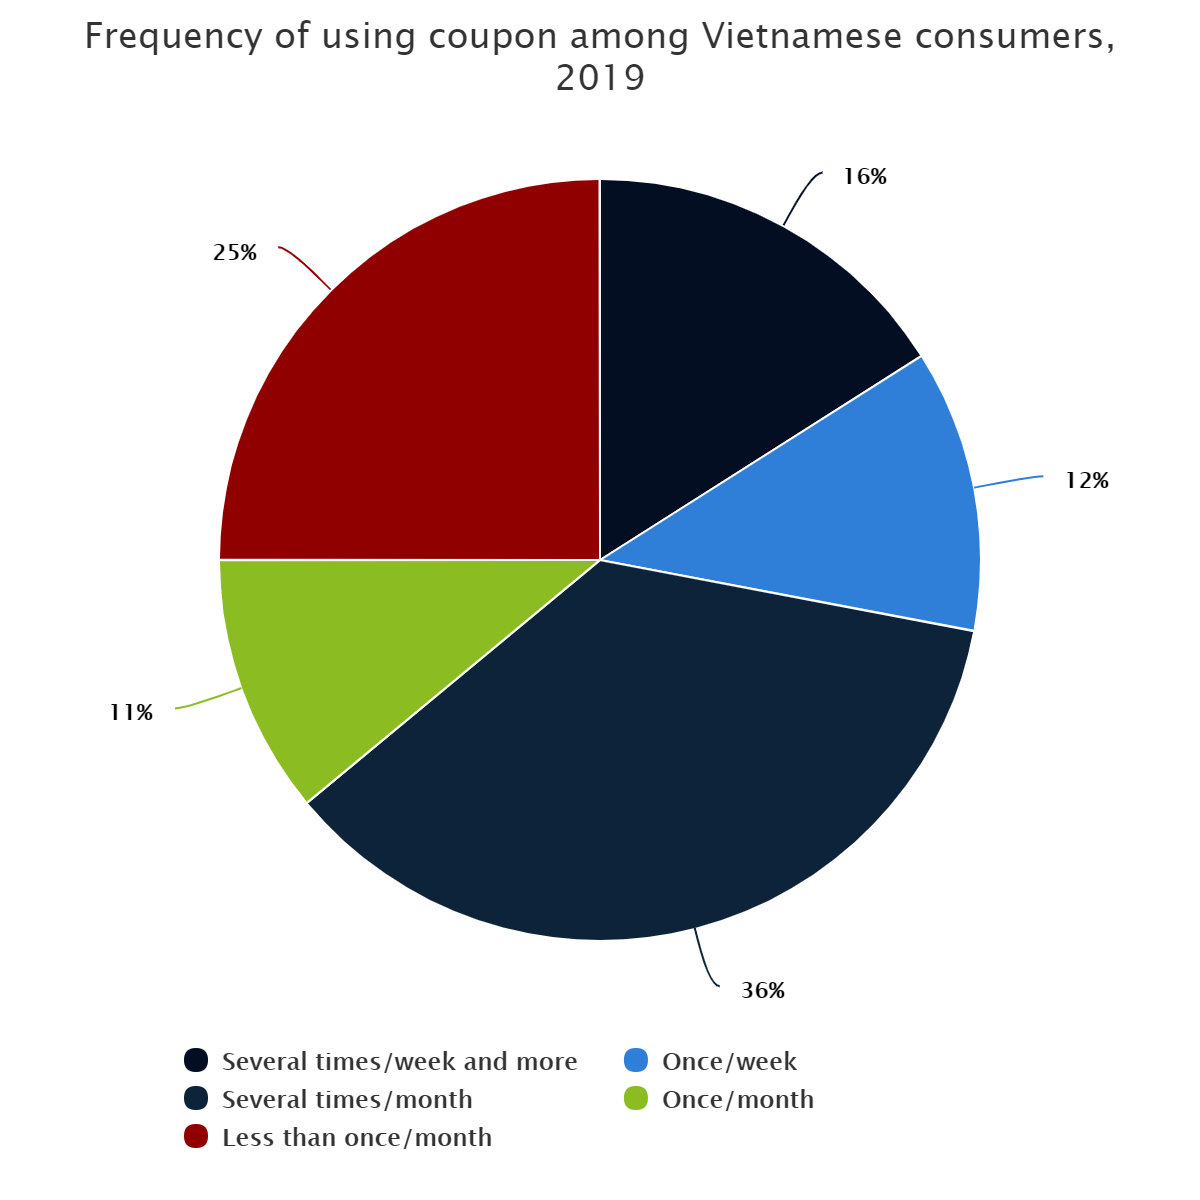 Frequency of using coupon among Vietnamese consumers, 2019